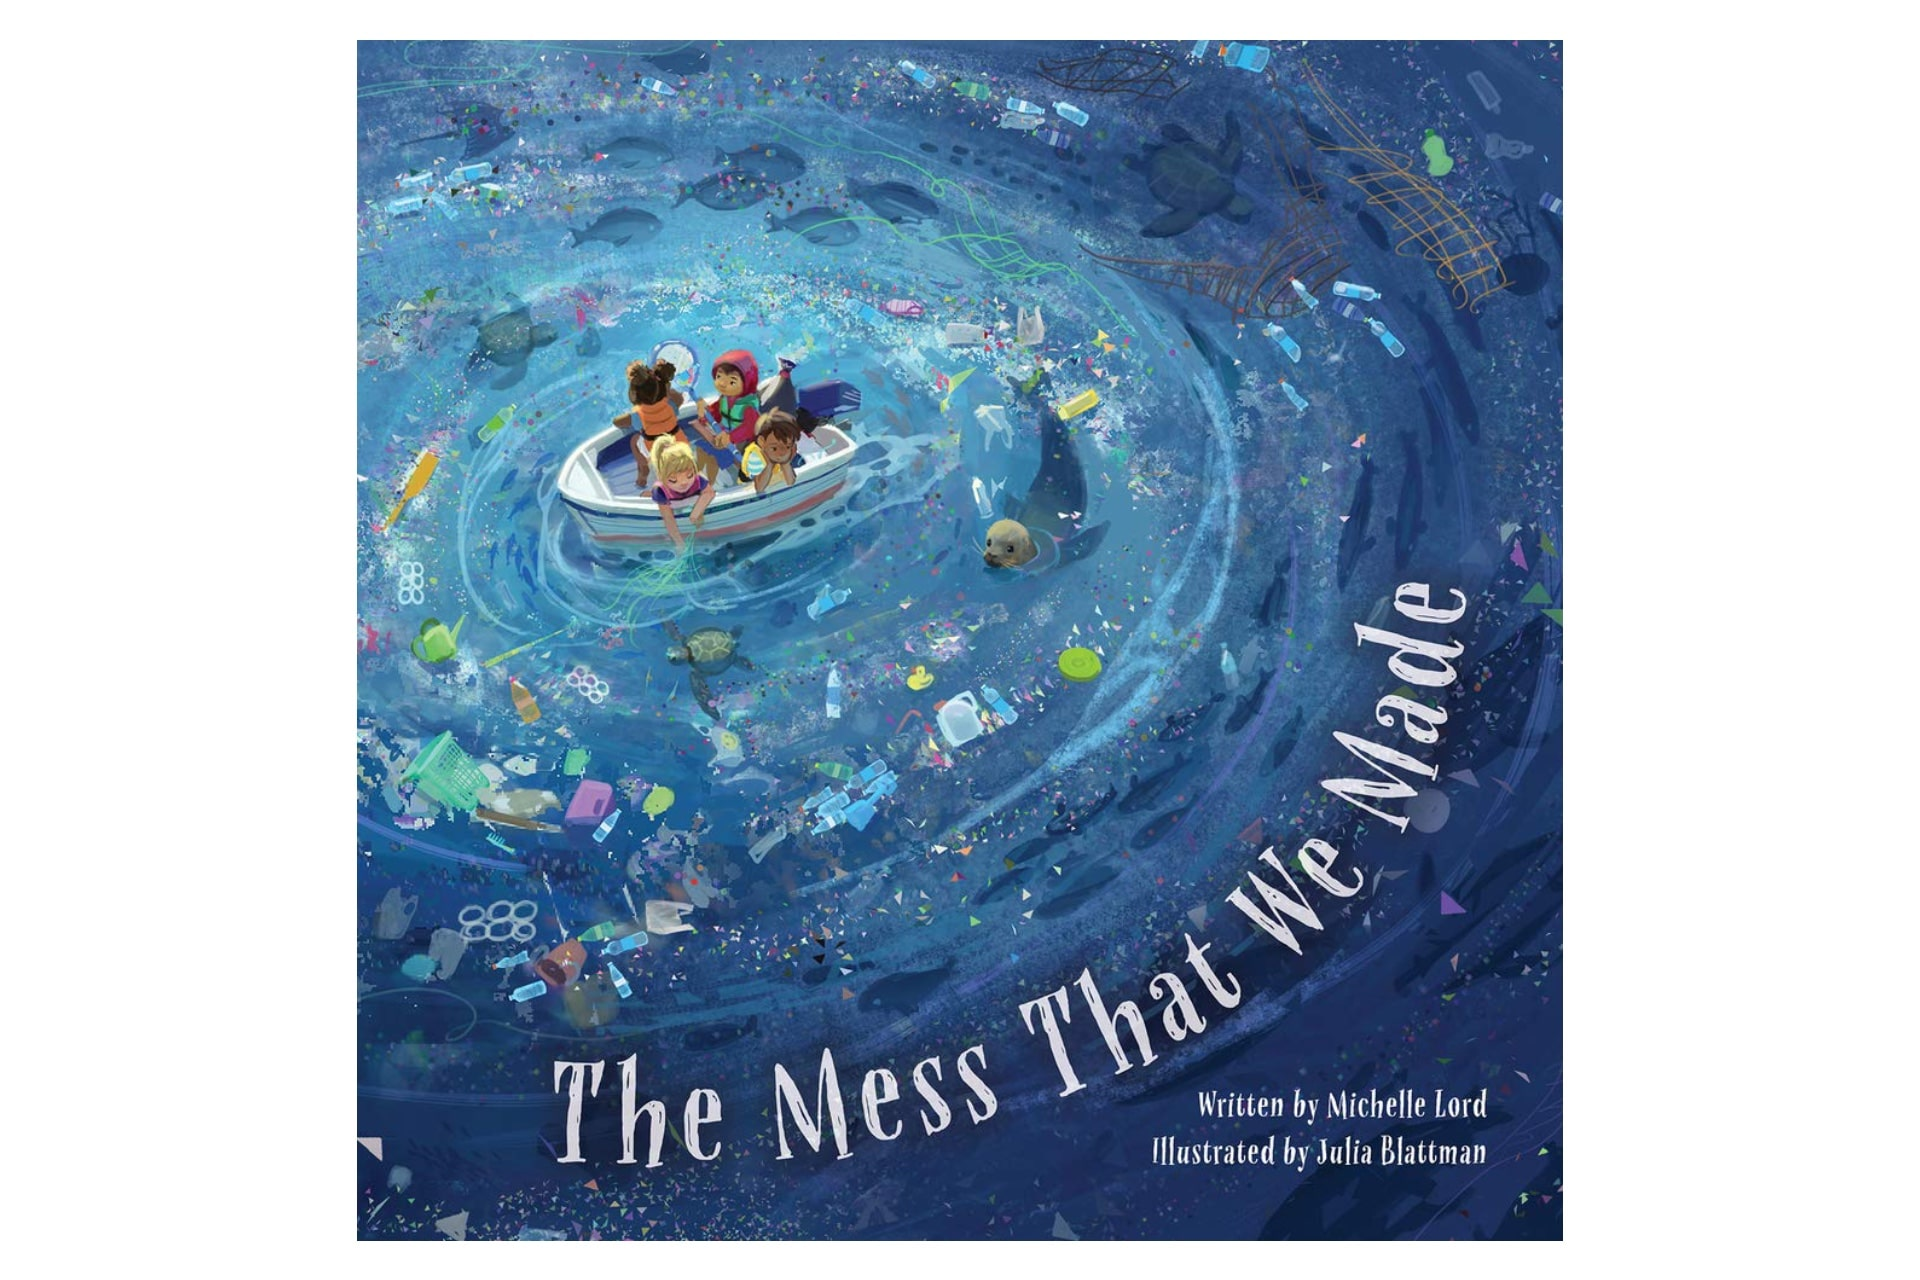 book cover with kids in a boat with garbage-filled water below